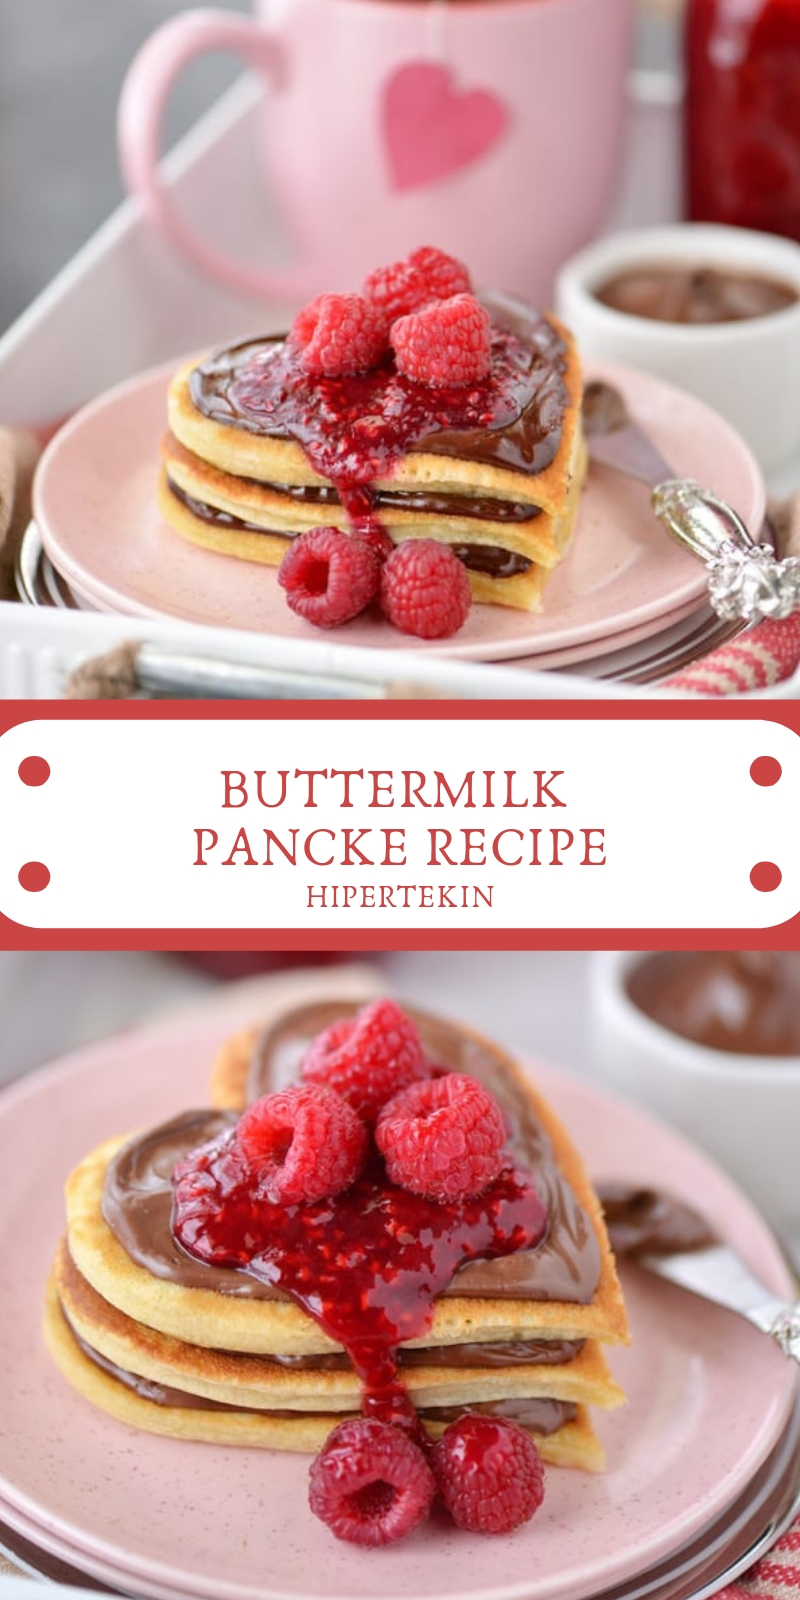 BUTTERMILK PANCKE RECIPE